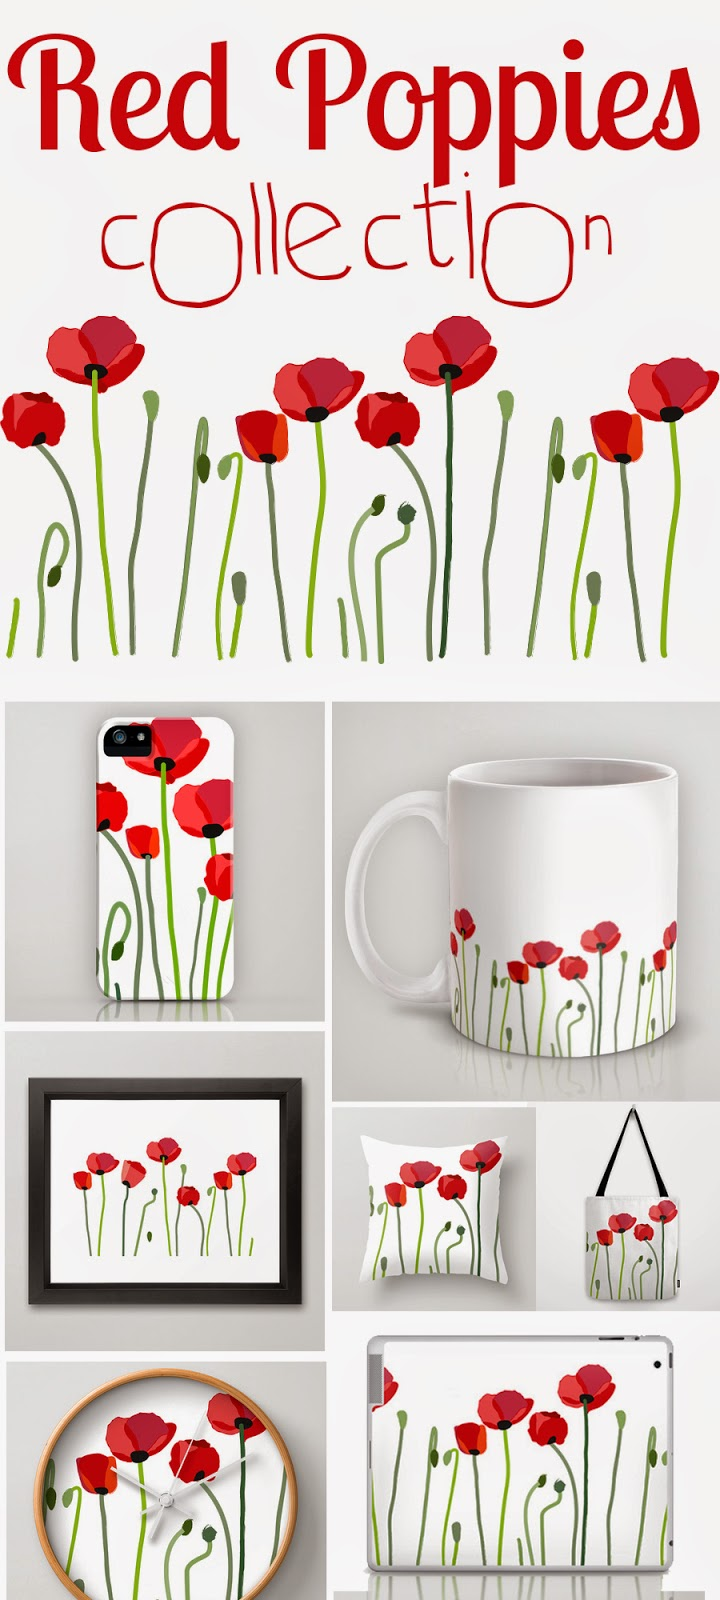 red-poppies-collection-illustrated-things